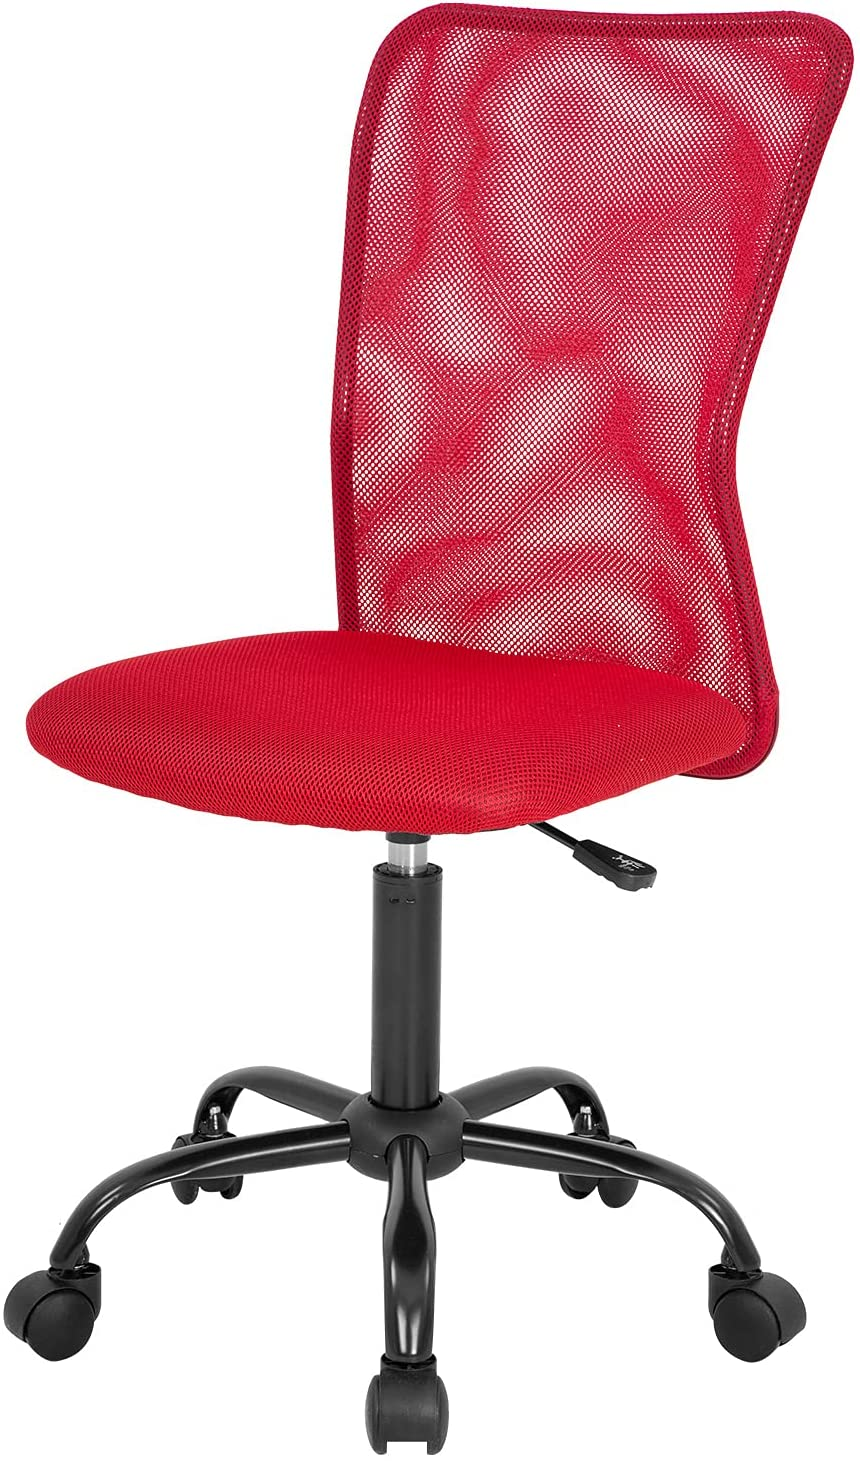 Home Office Chair Mid Back Mesh Desk Chair Armless Computer Chair Ergonomic Task Rolling Swivel Chair Back Support Adjustable Modern Chair with Lumbar Support (Red)